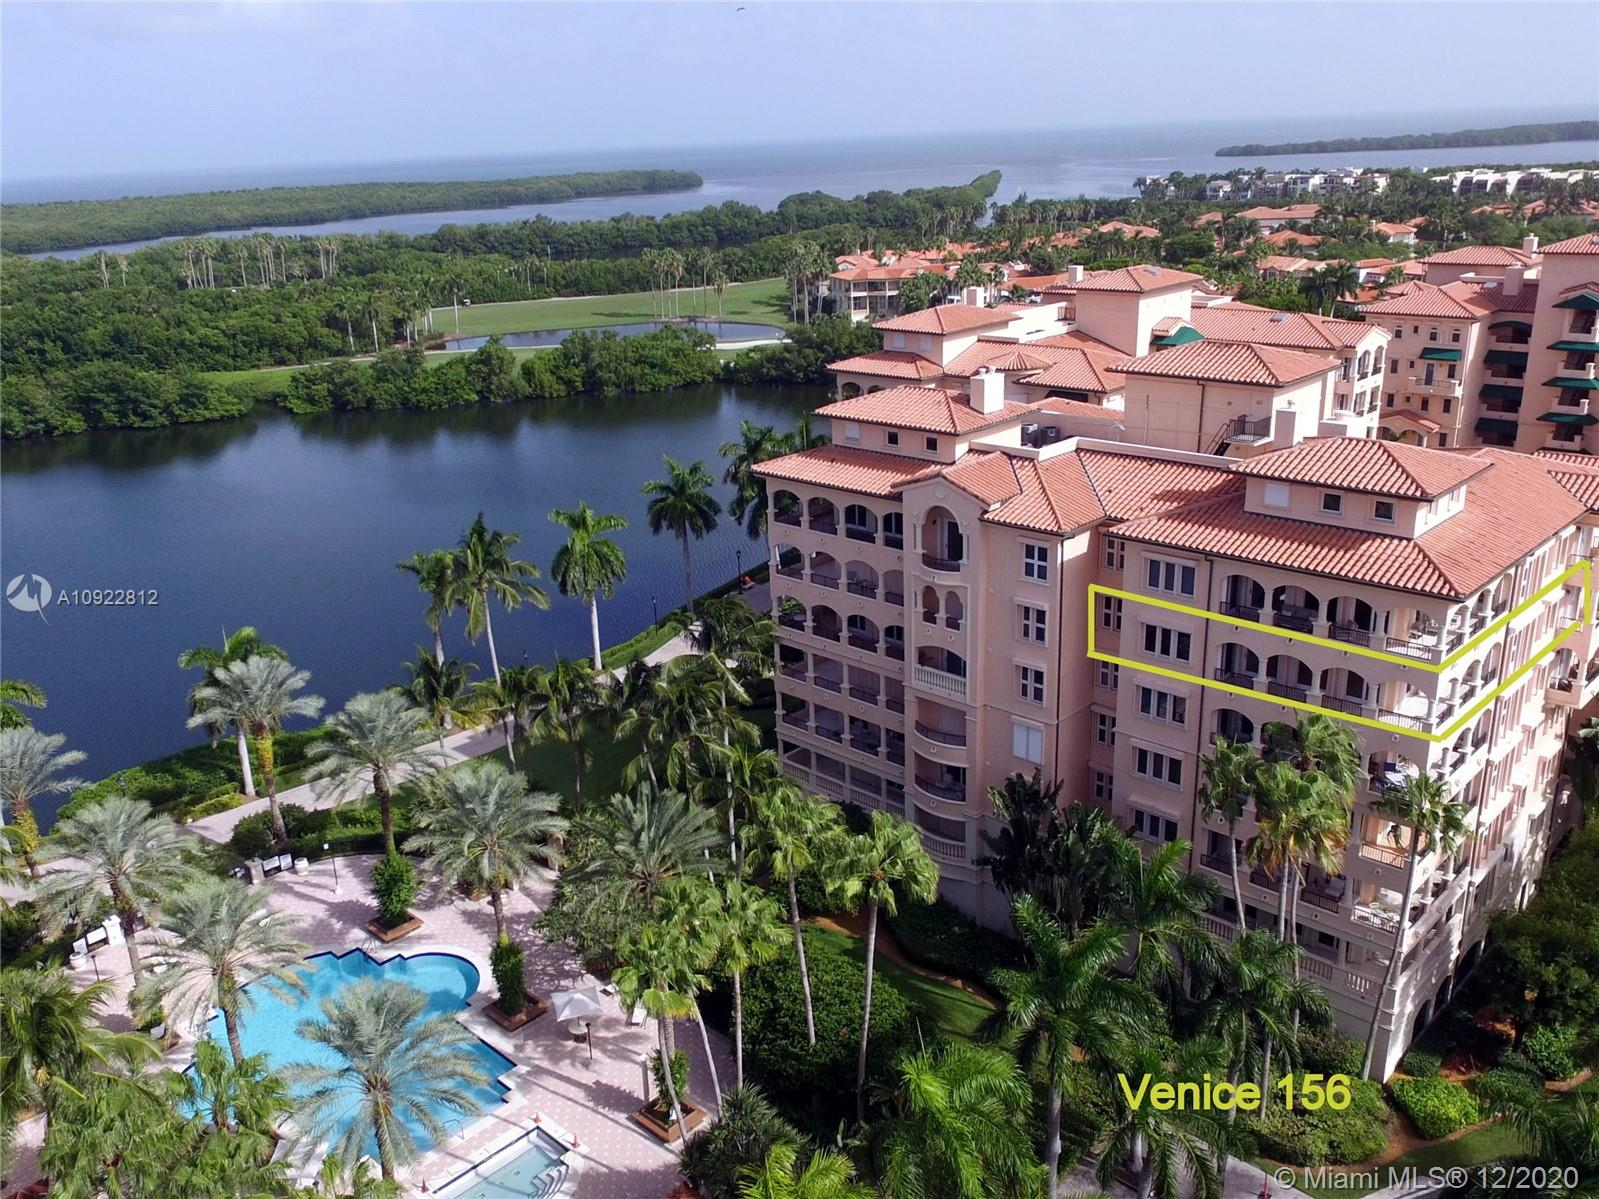 13643  Deering Bay Dr #156 For Sale A10922812, FL